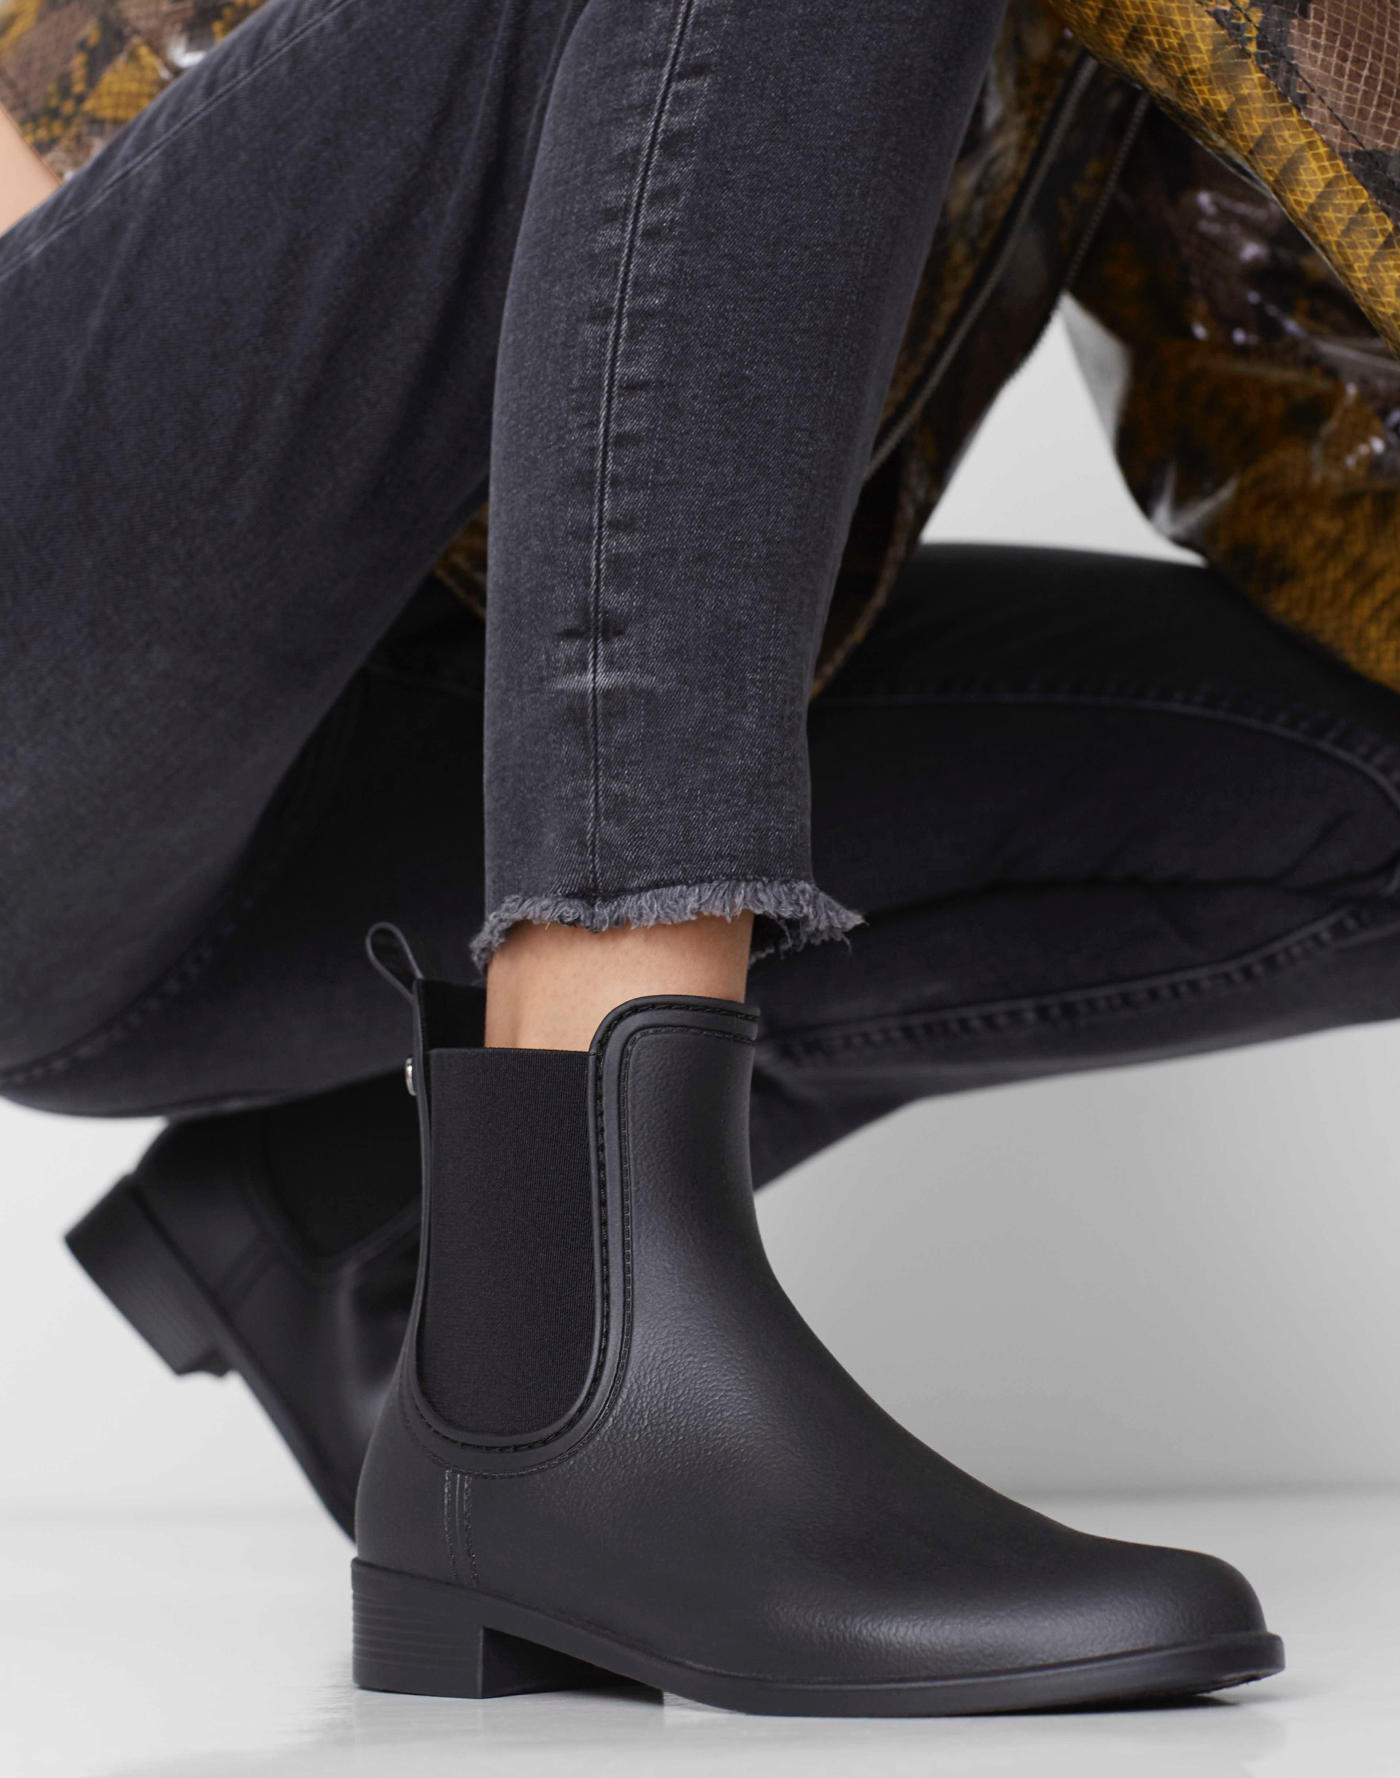 bf30b479ad4 Boots For Women | Winter Boots & Ankle Boots | ALDO US | Aldoshoes.com US